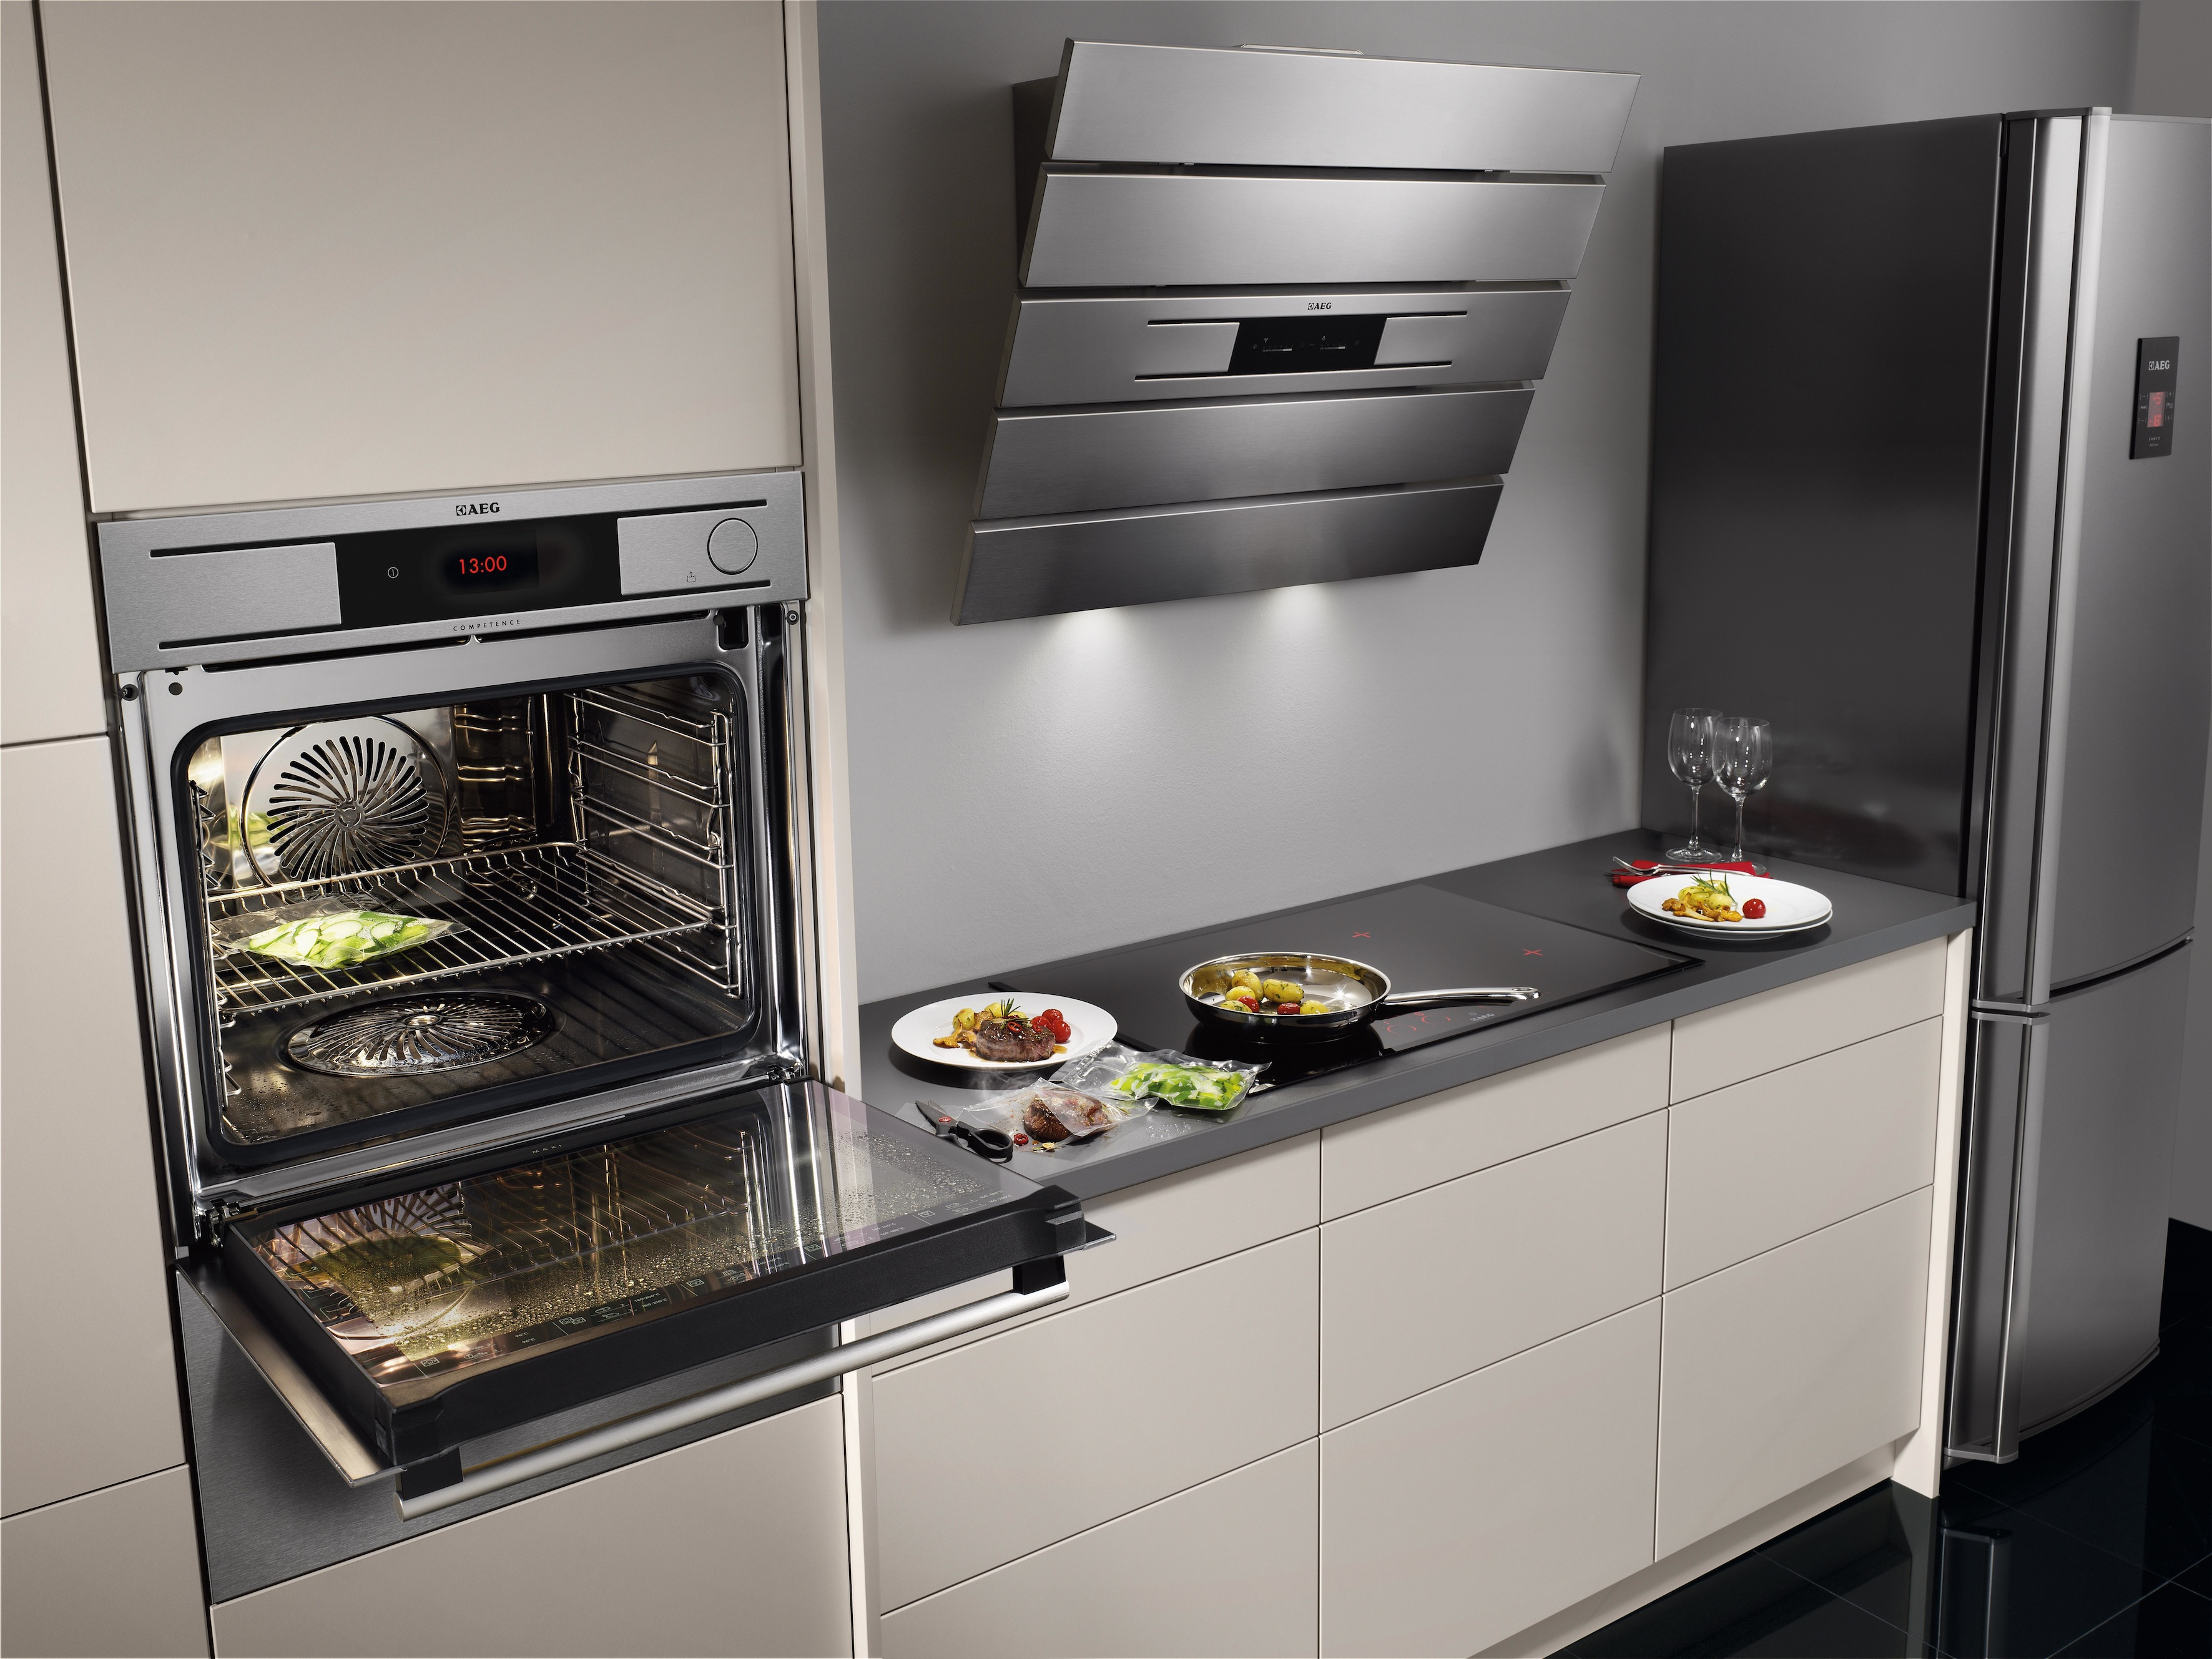 Electrolux: good results especially for premium products